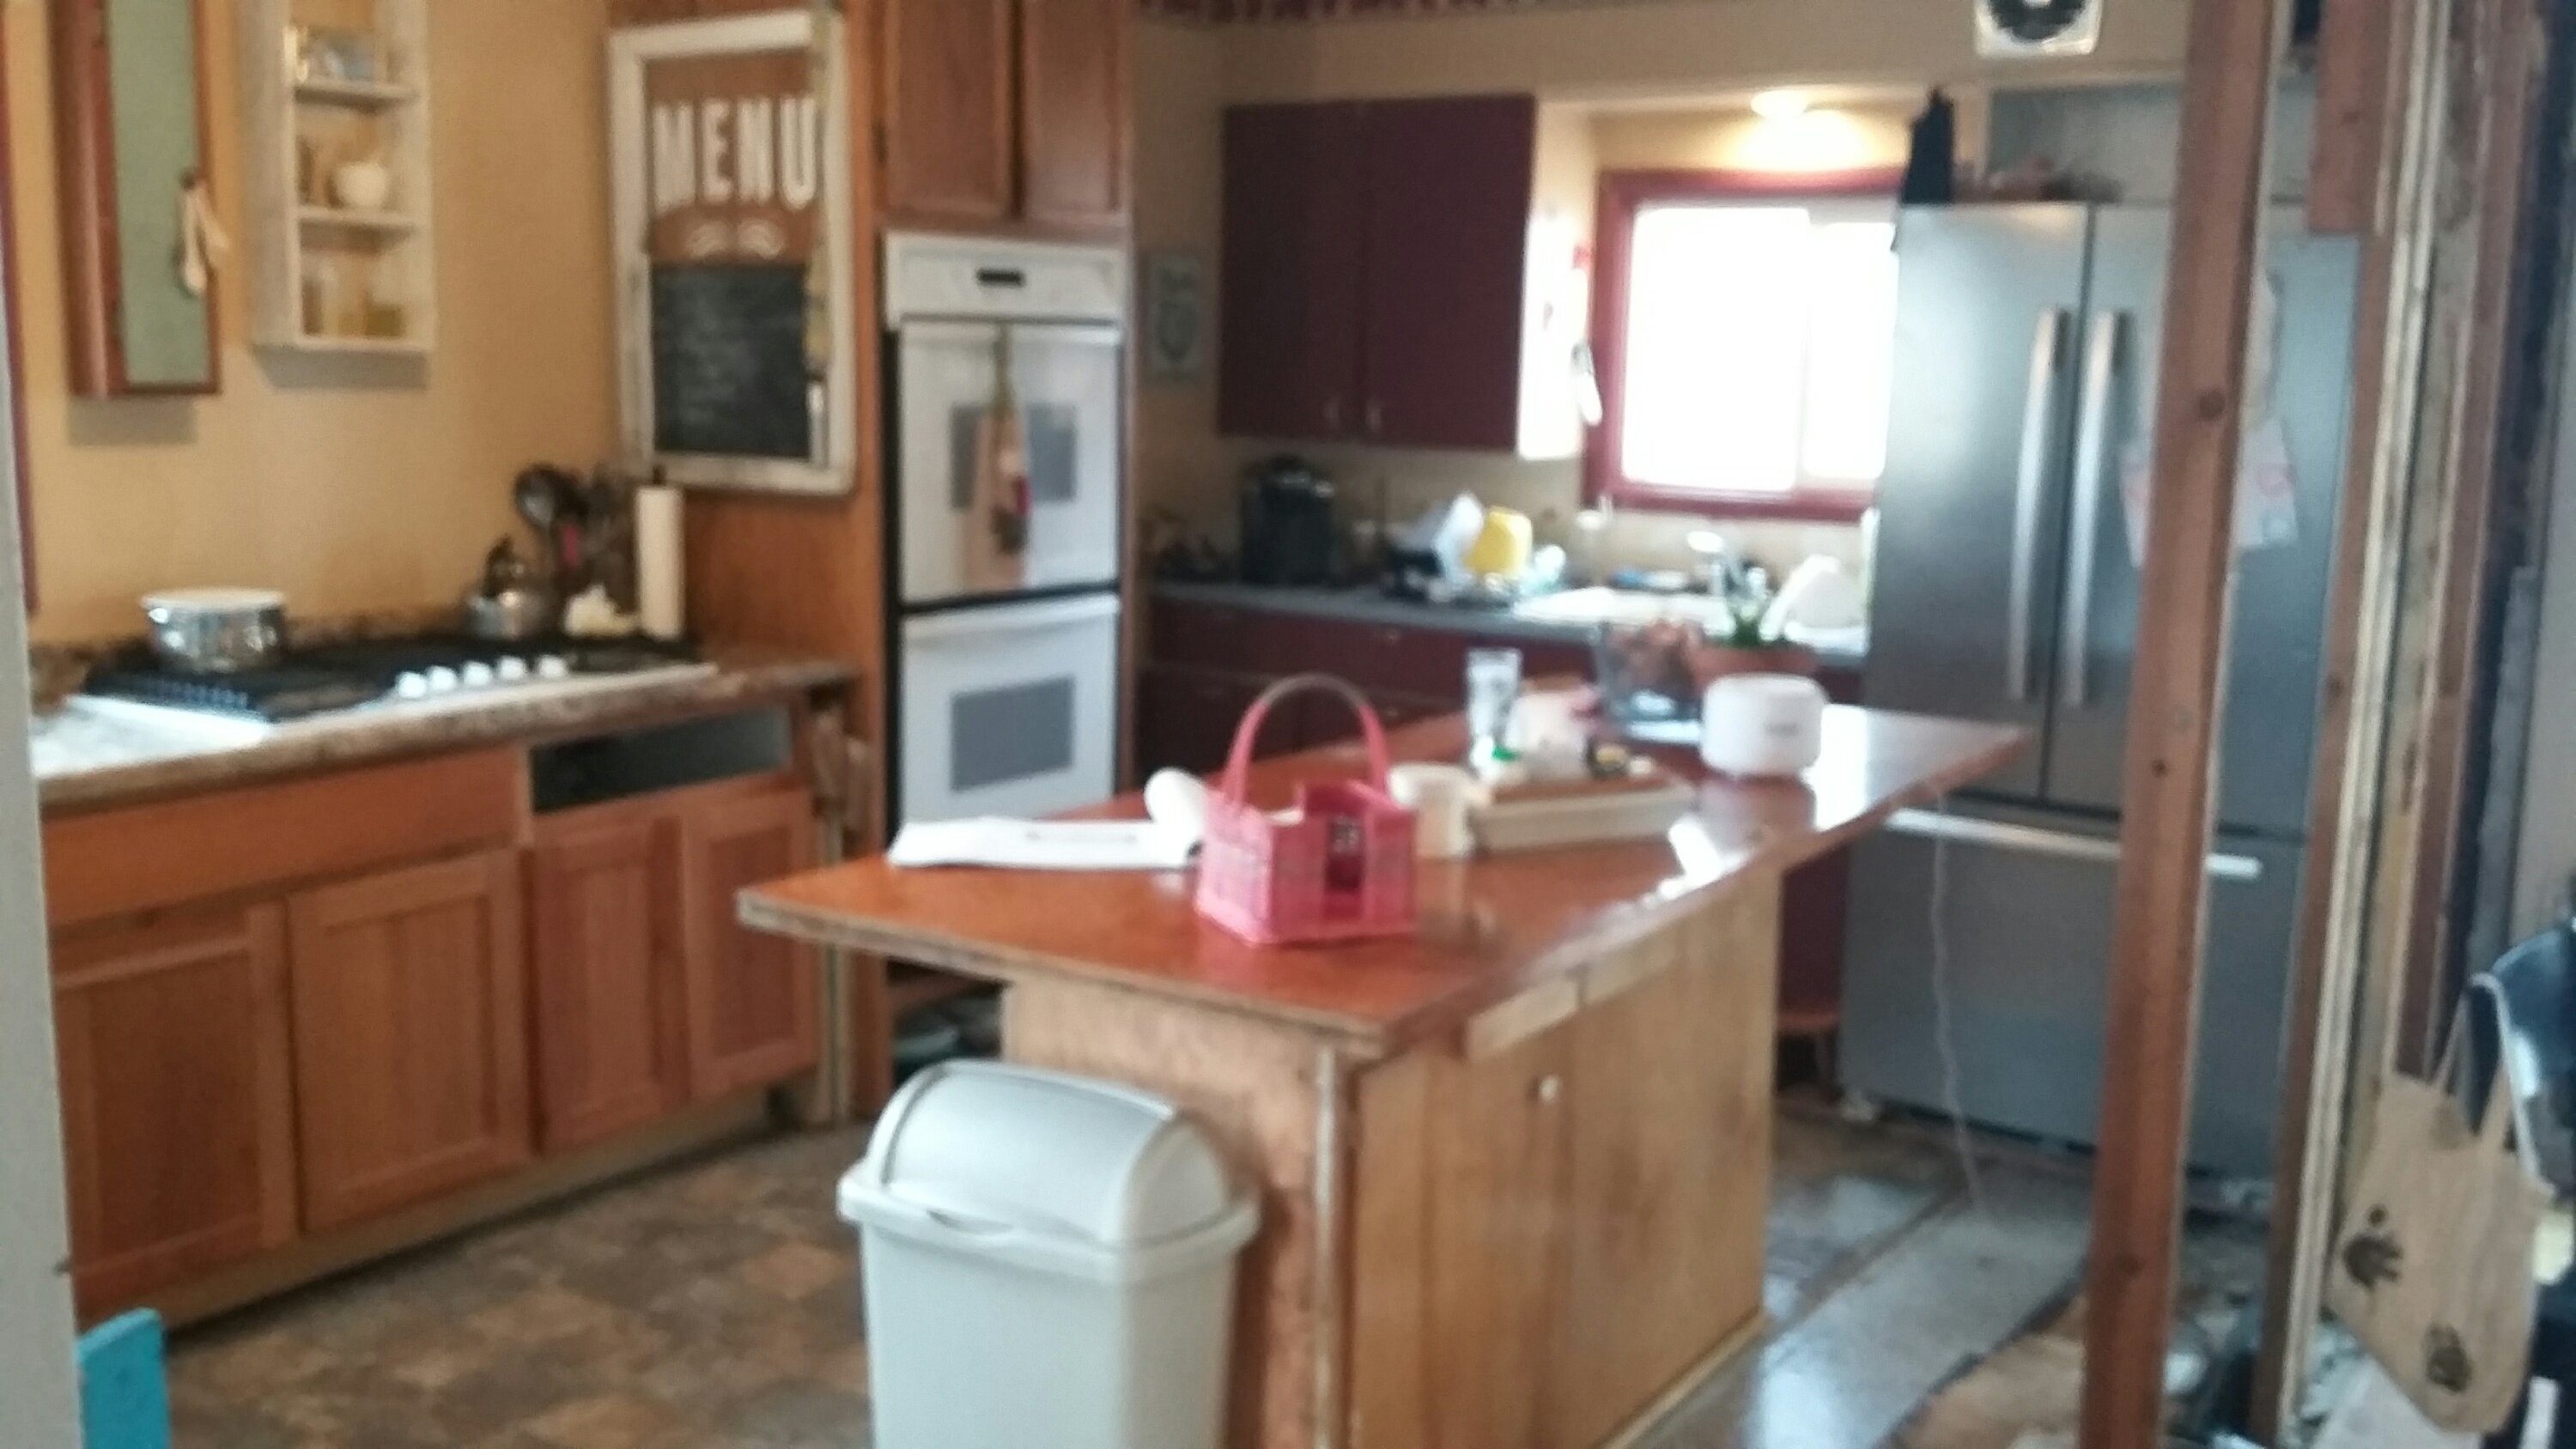 of cover countertop have reno completely tag life moved my bye basement kitchen temporary mid range hoods we our week out